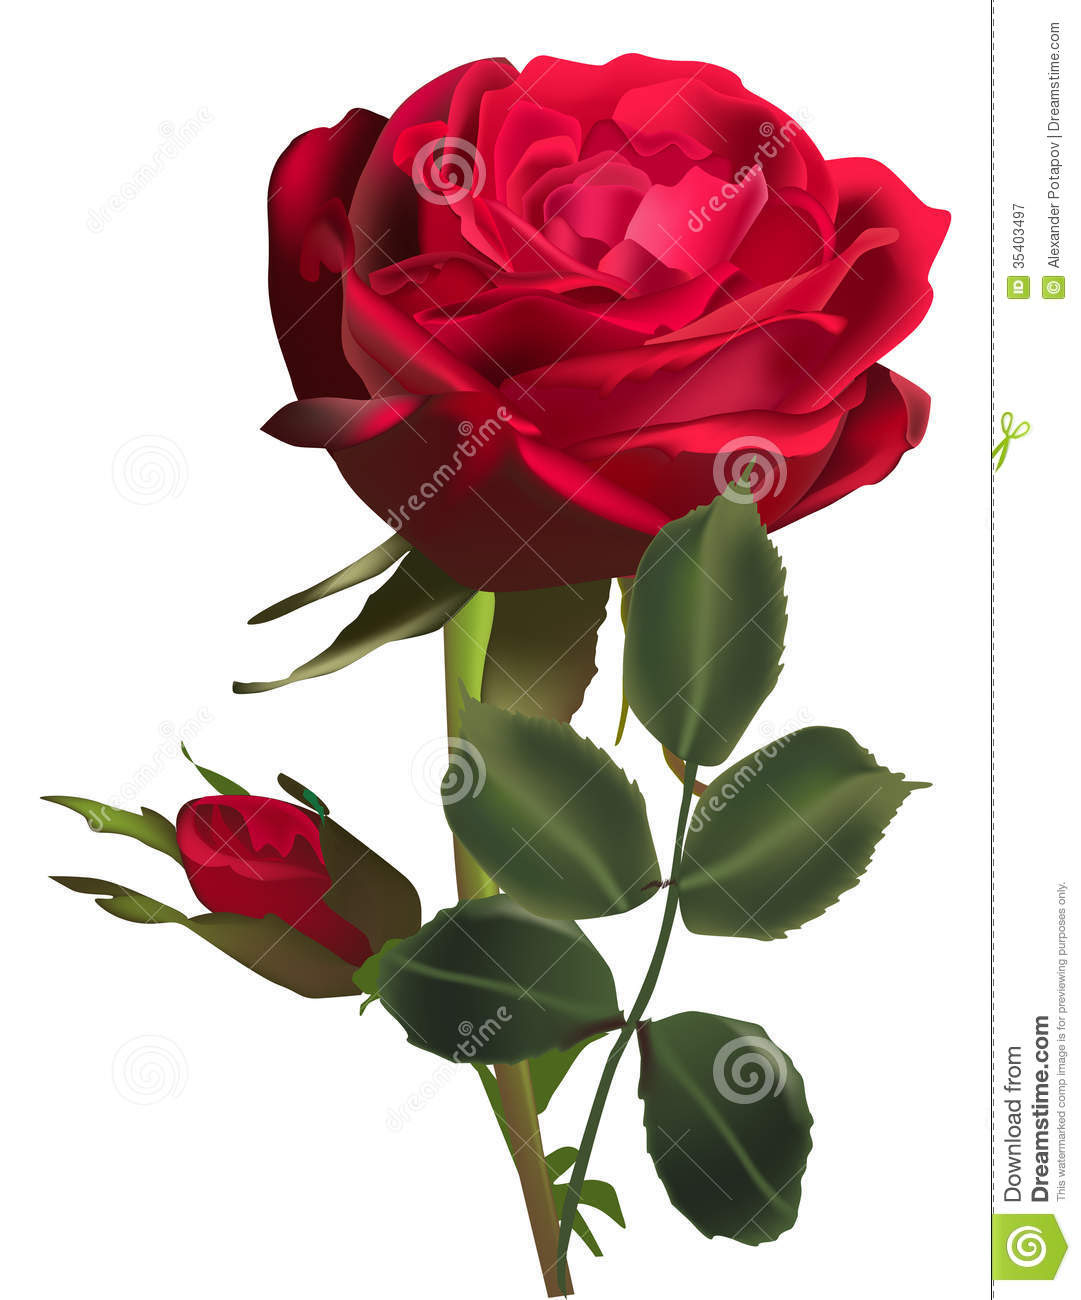 Gaeroladid White And Red Rose Images